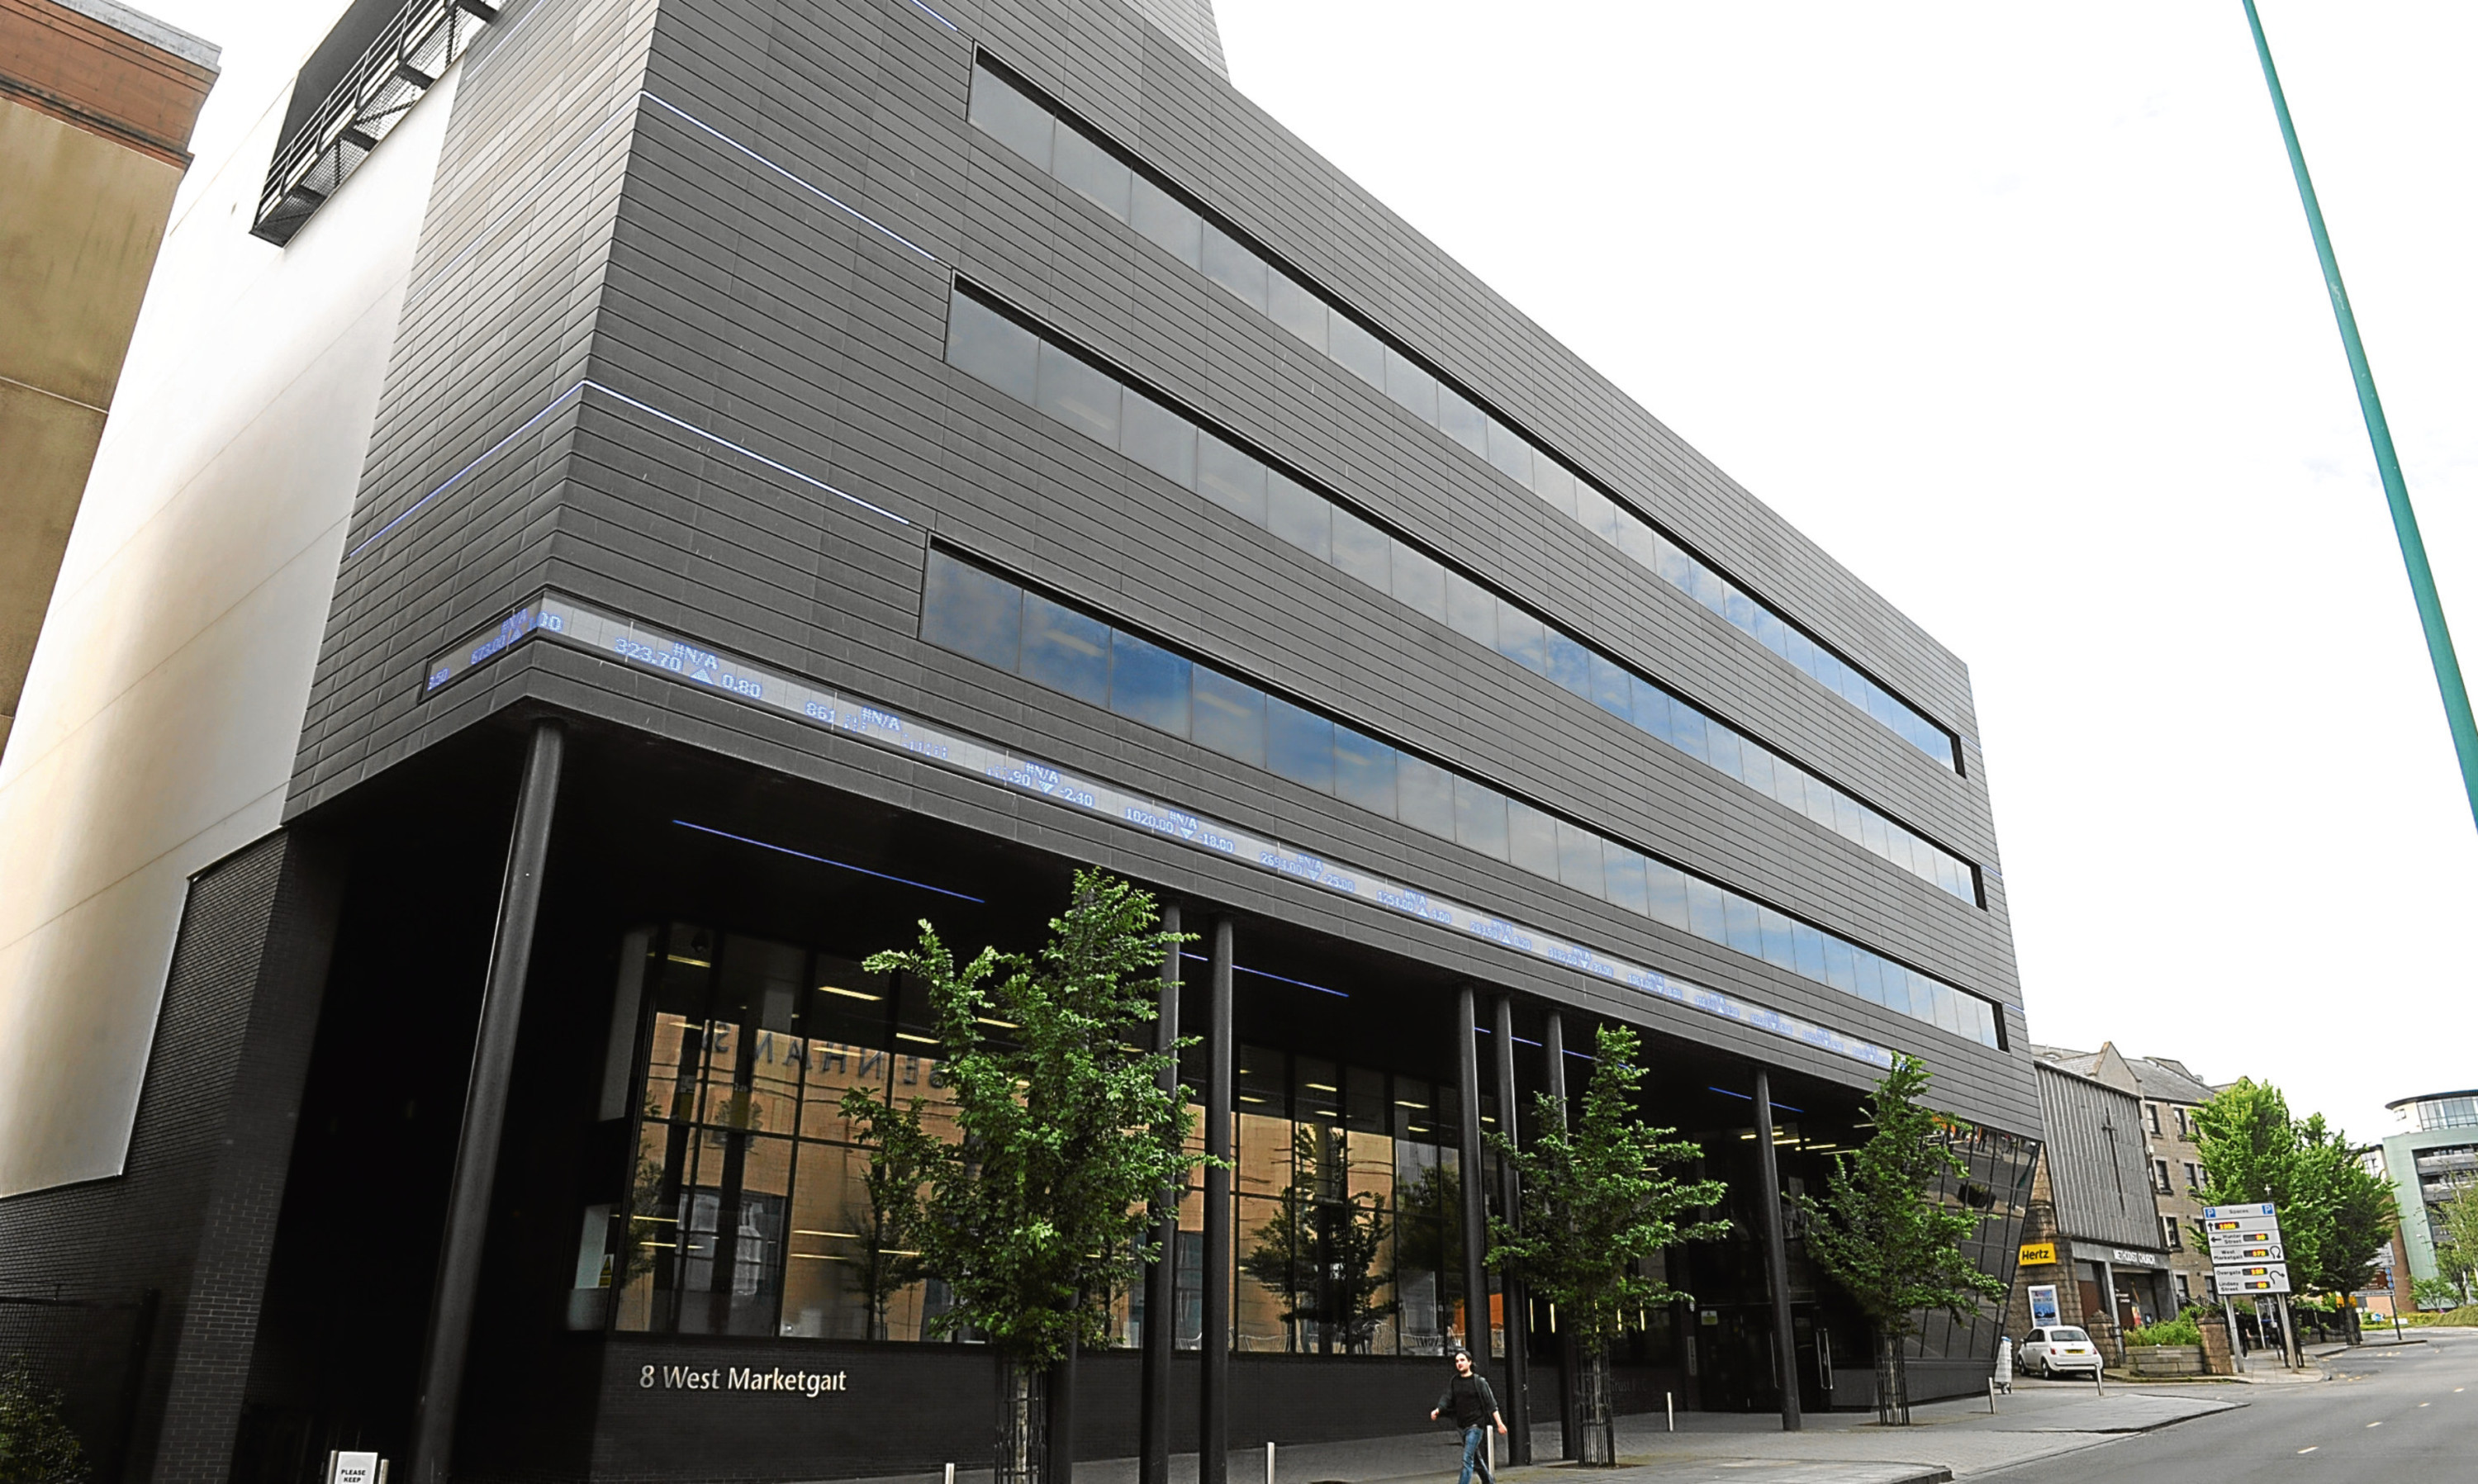 The Alliance Trust was subject to a takeover bid by RIT Capital in May